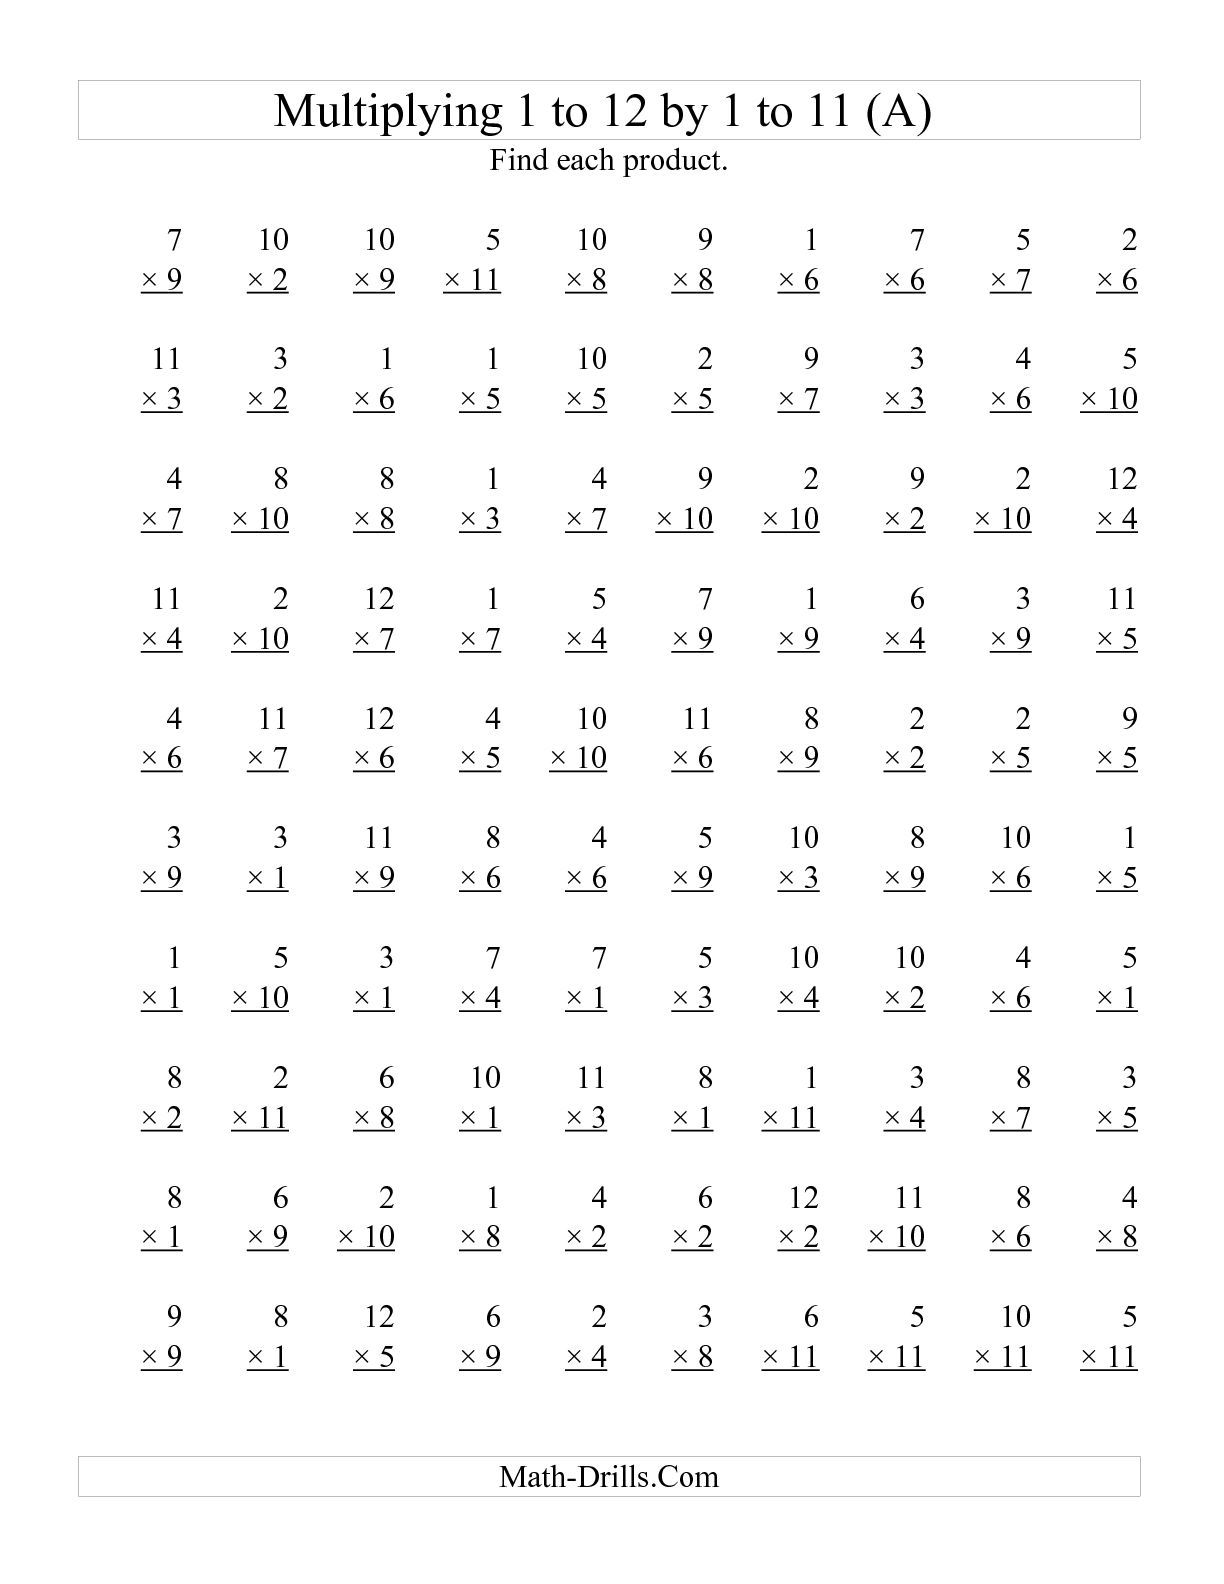 worksheet Multiplcation Worksheet the 100 vertical questions multiplying 1 to 12 by 11 a math worksheet